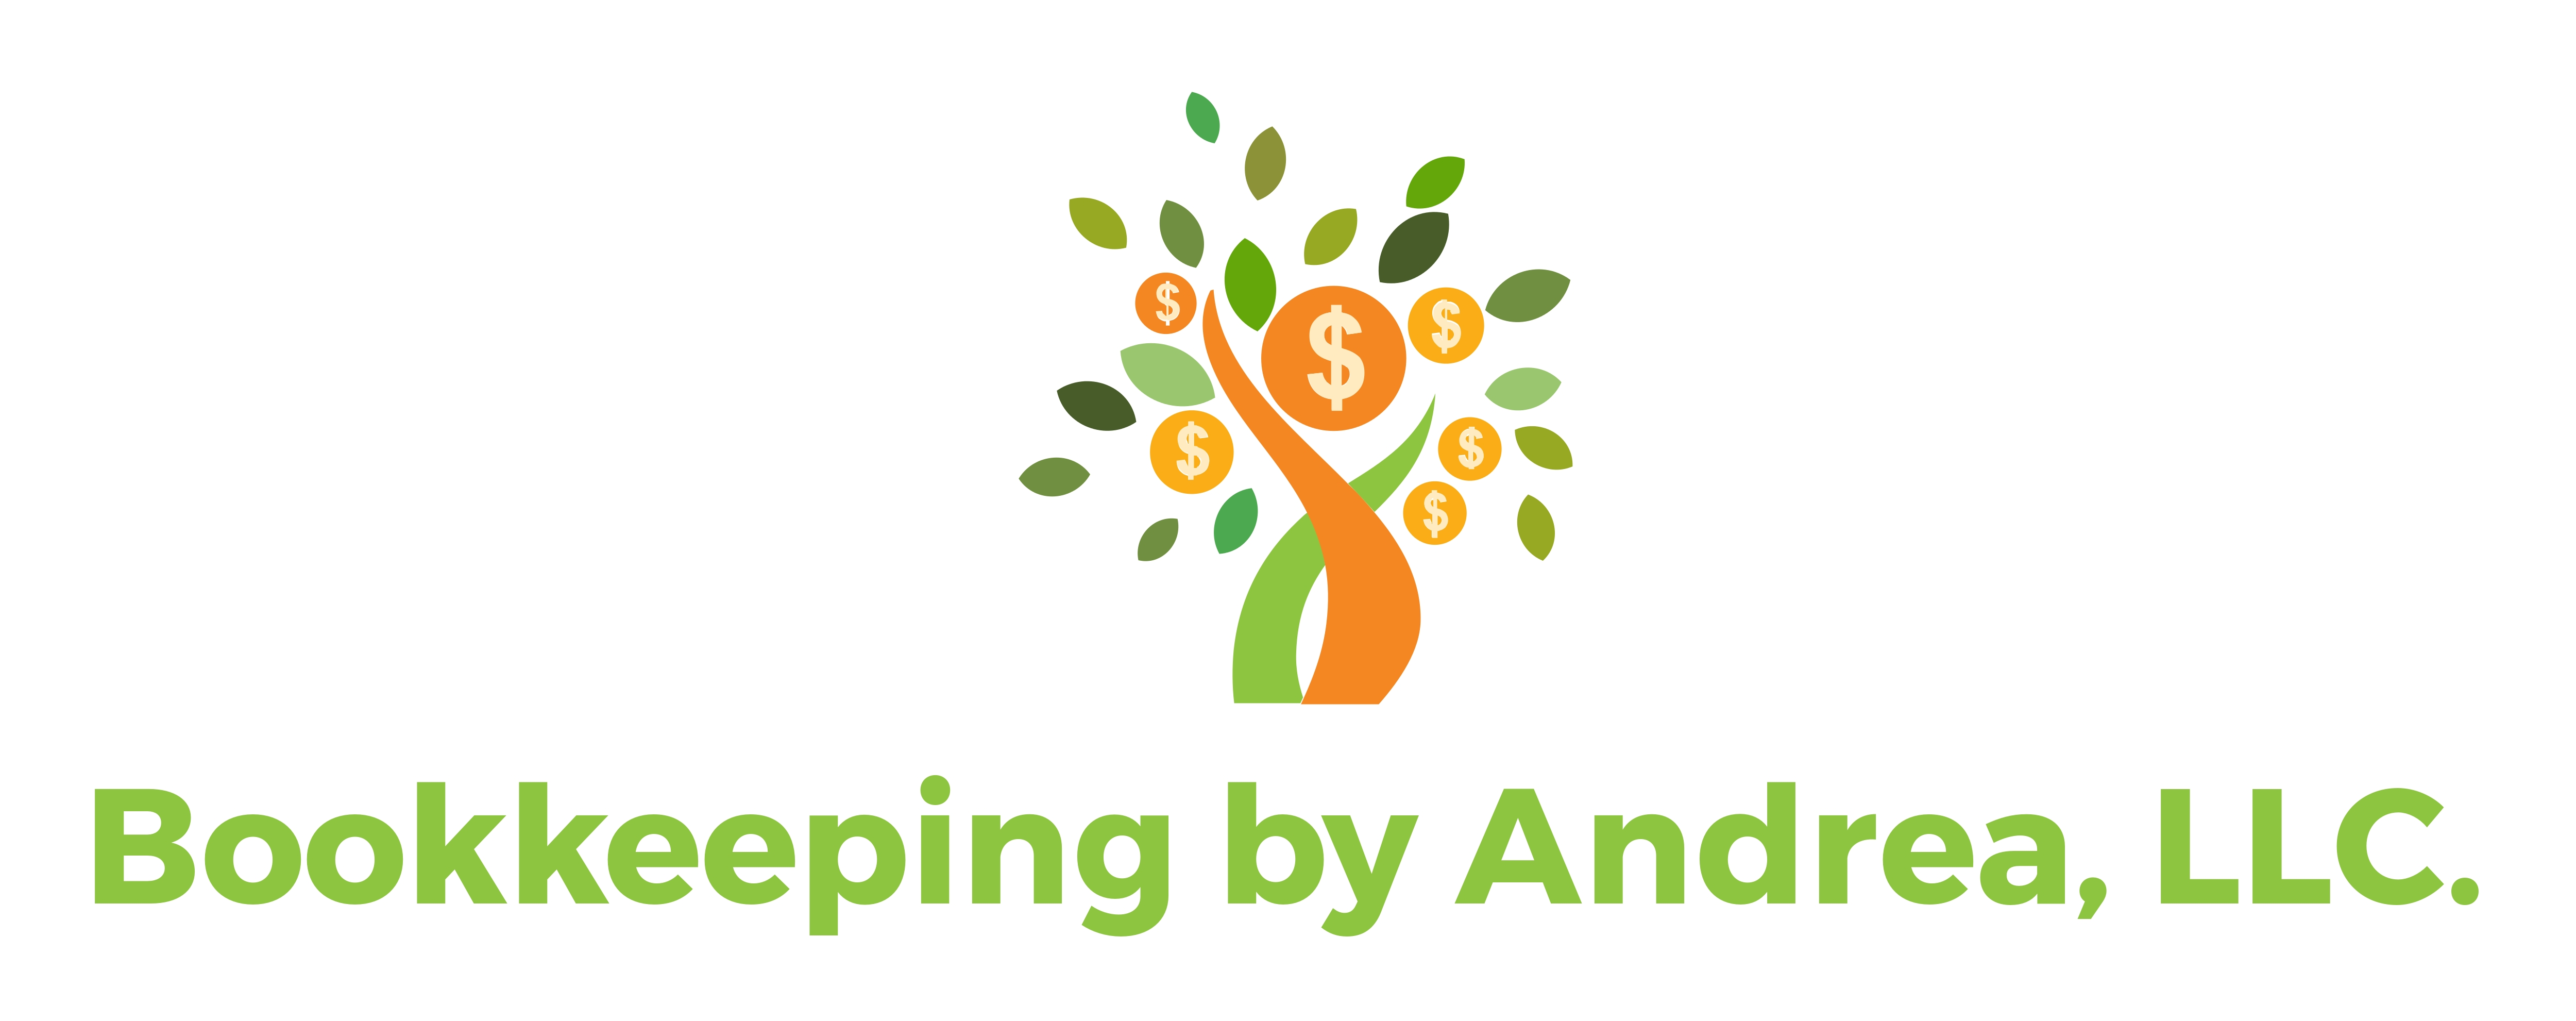 Bookkeeping by Andrea, LLC. Logo